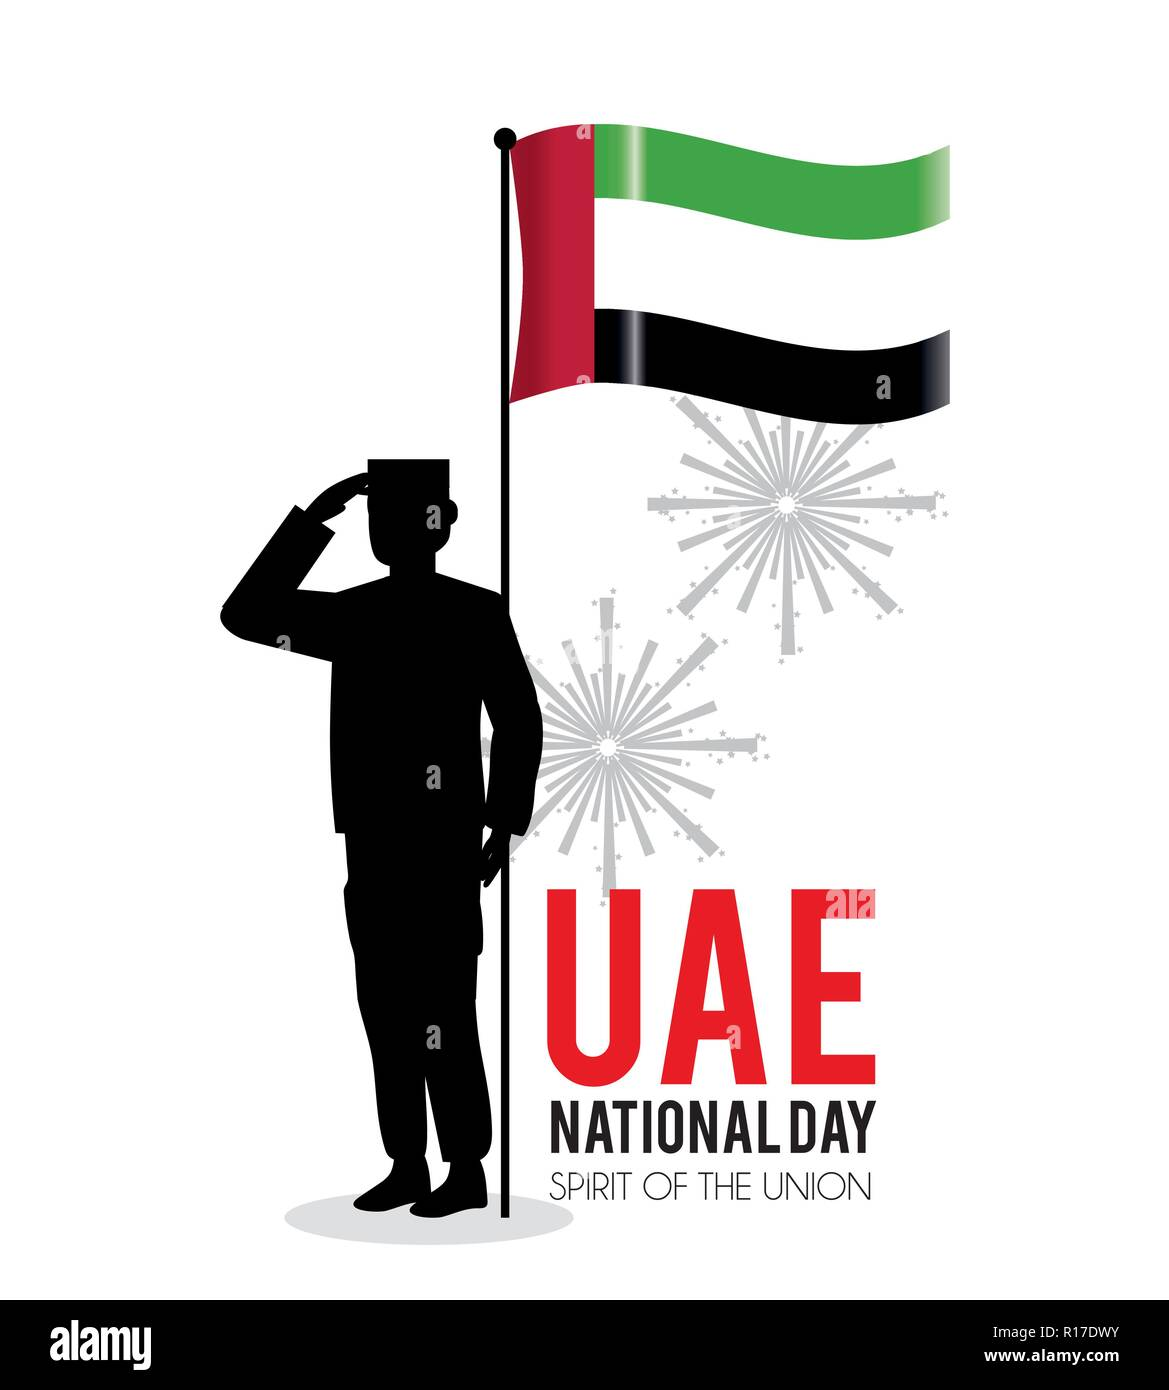 soldier with uae flag to celebrate national day - Stock Image